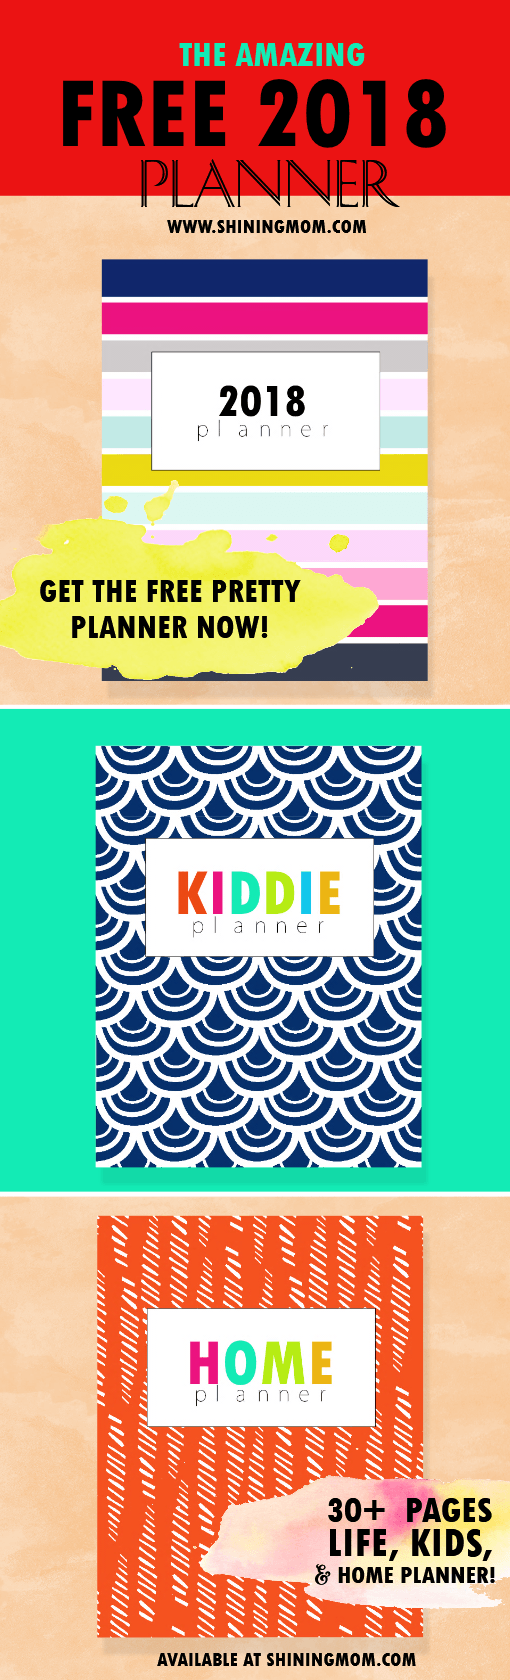 The Ultimate FREE Planner 2018: Design a Life You Love!